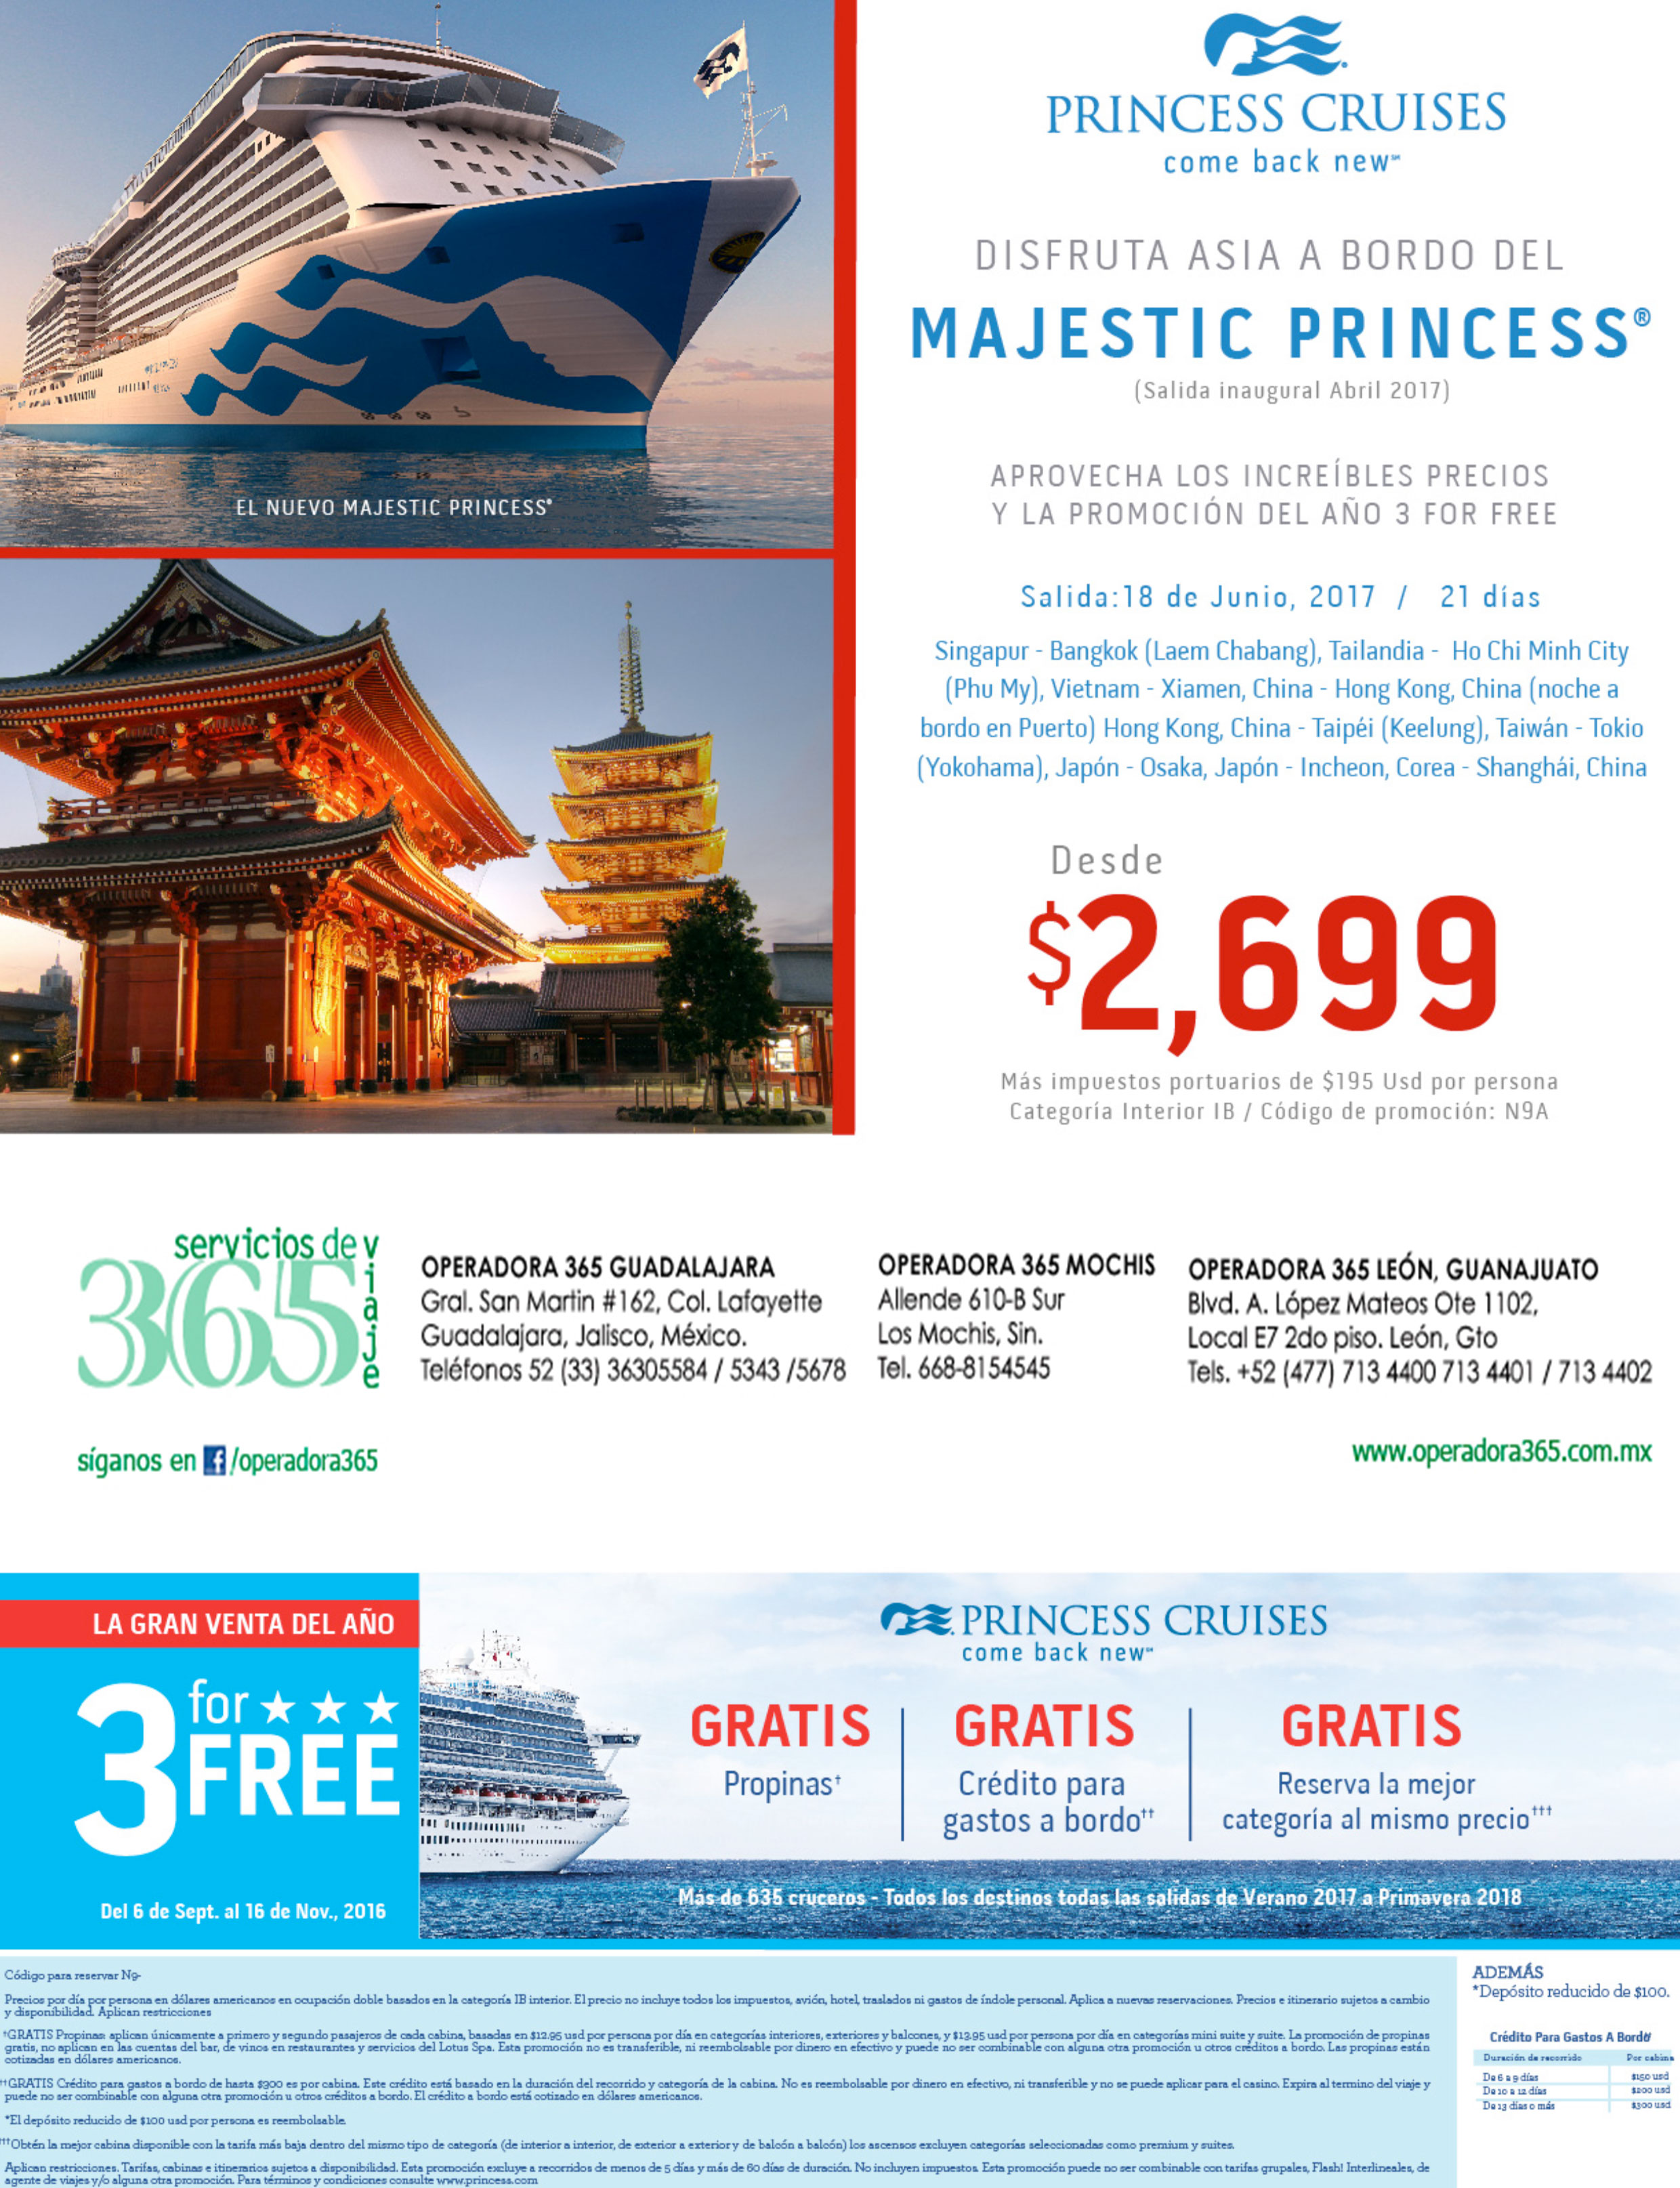 princess-majestic-princess-junio-2017-2